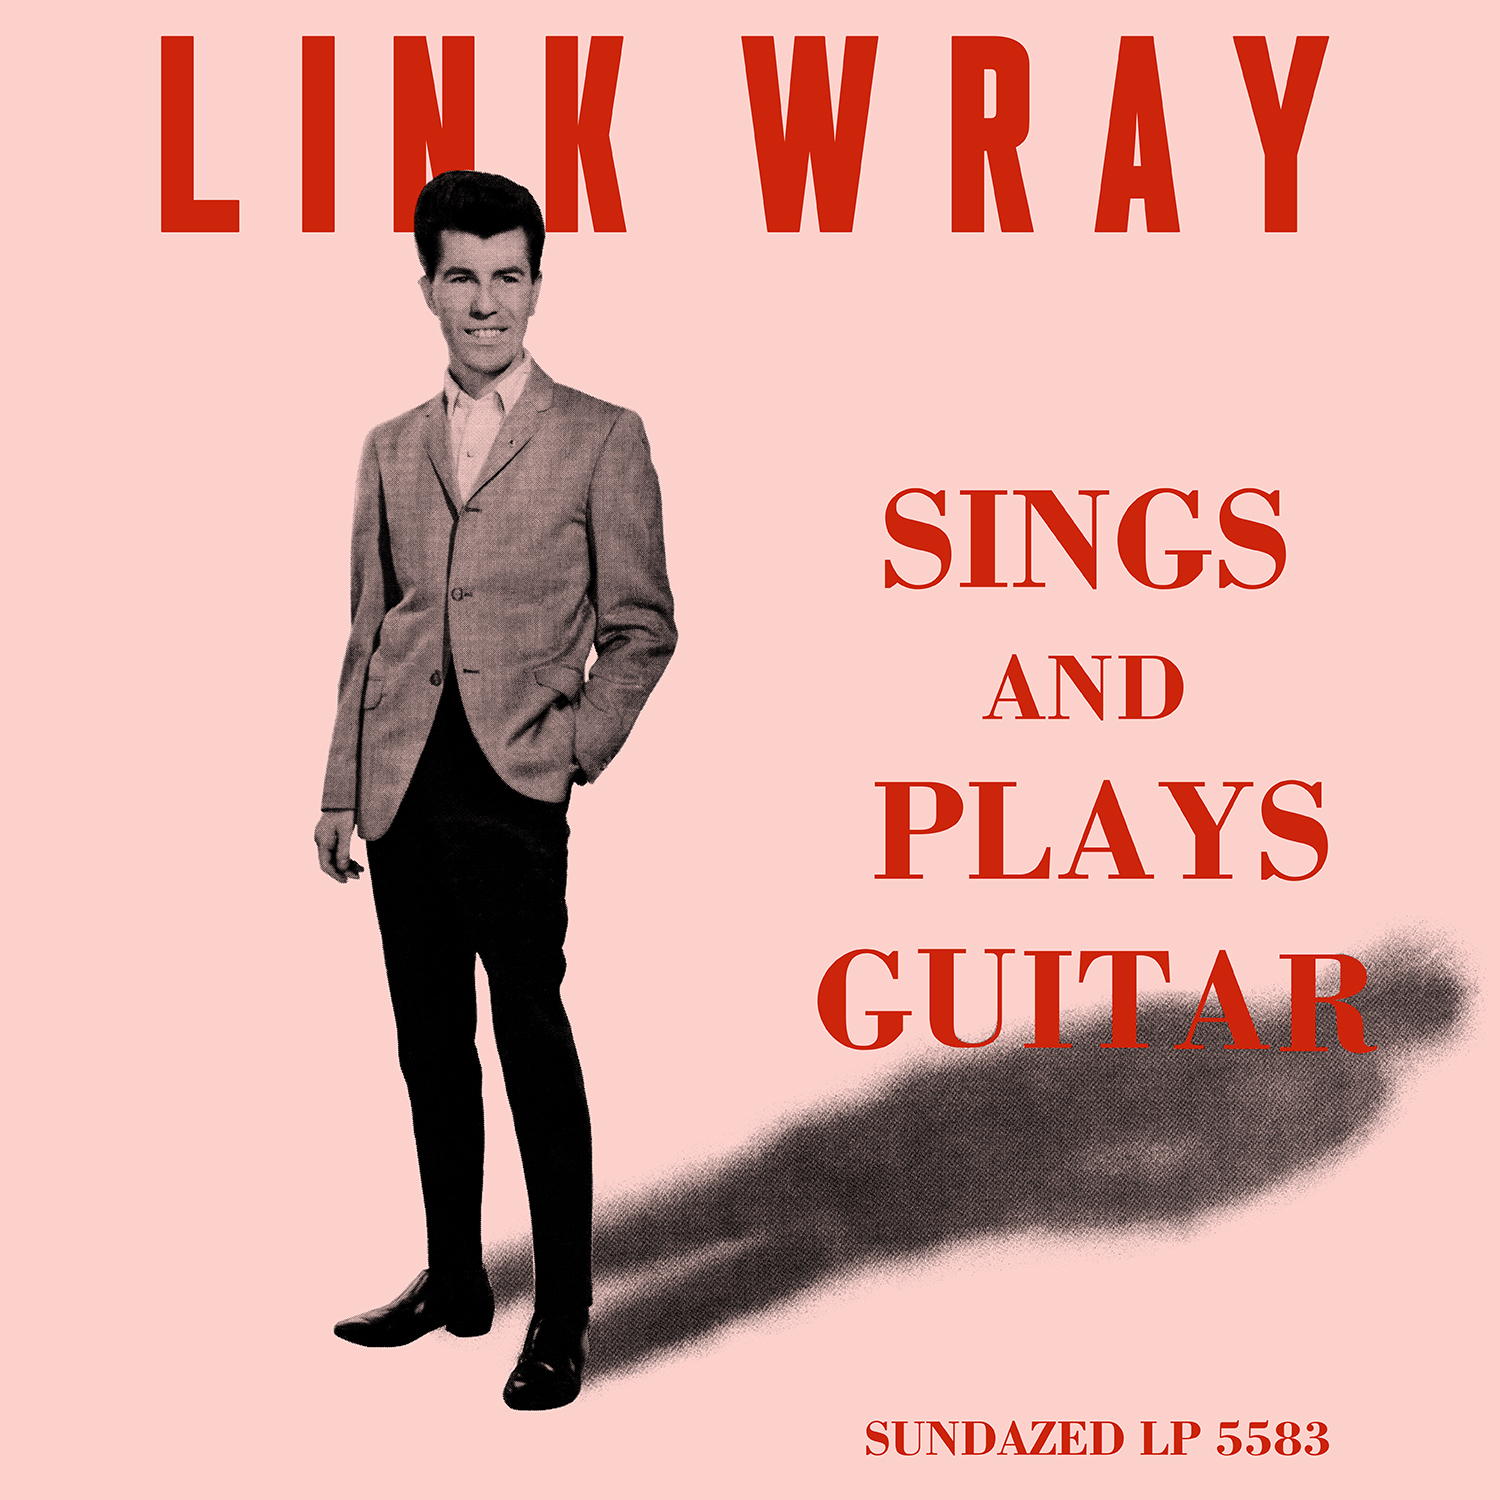 Link Wray - Link Wray Sings And Plays Guitar - Clear Vinyl LP - LP-SUND-5583